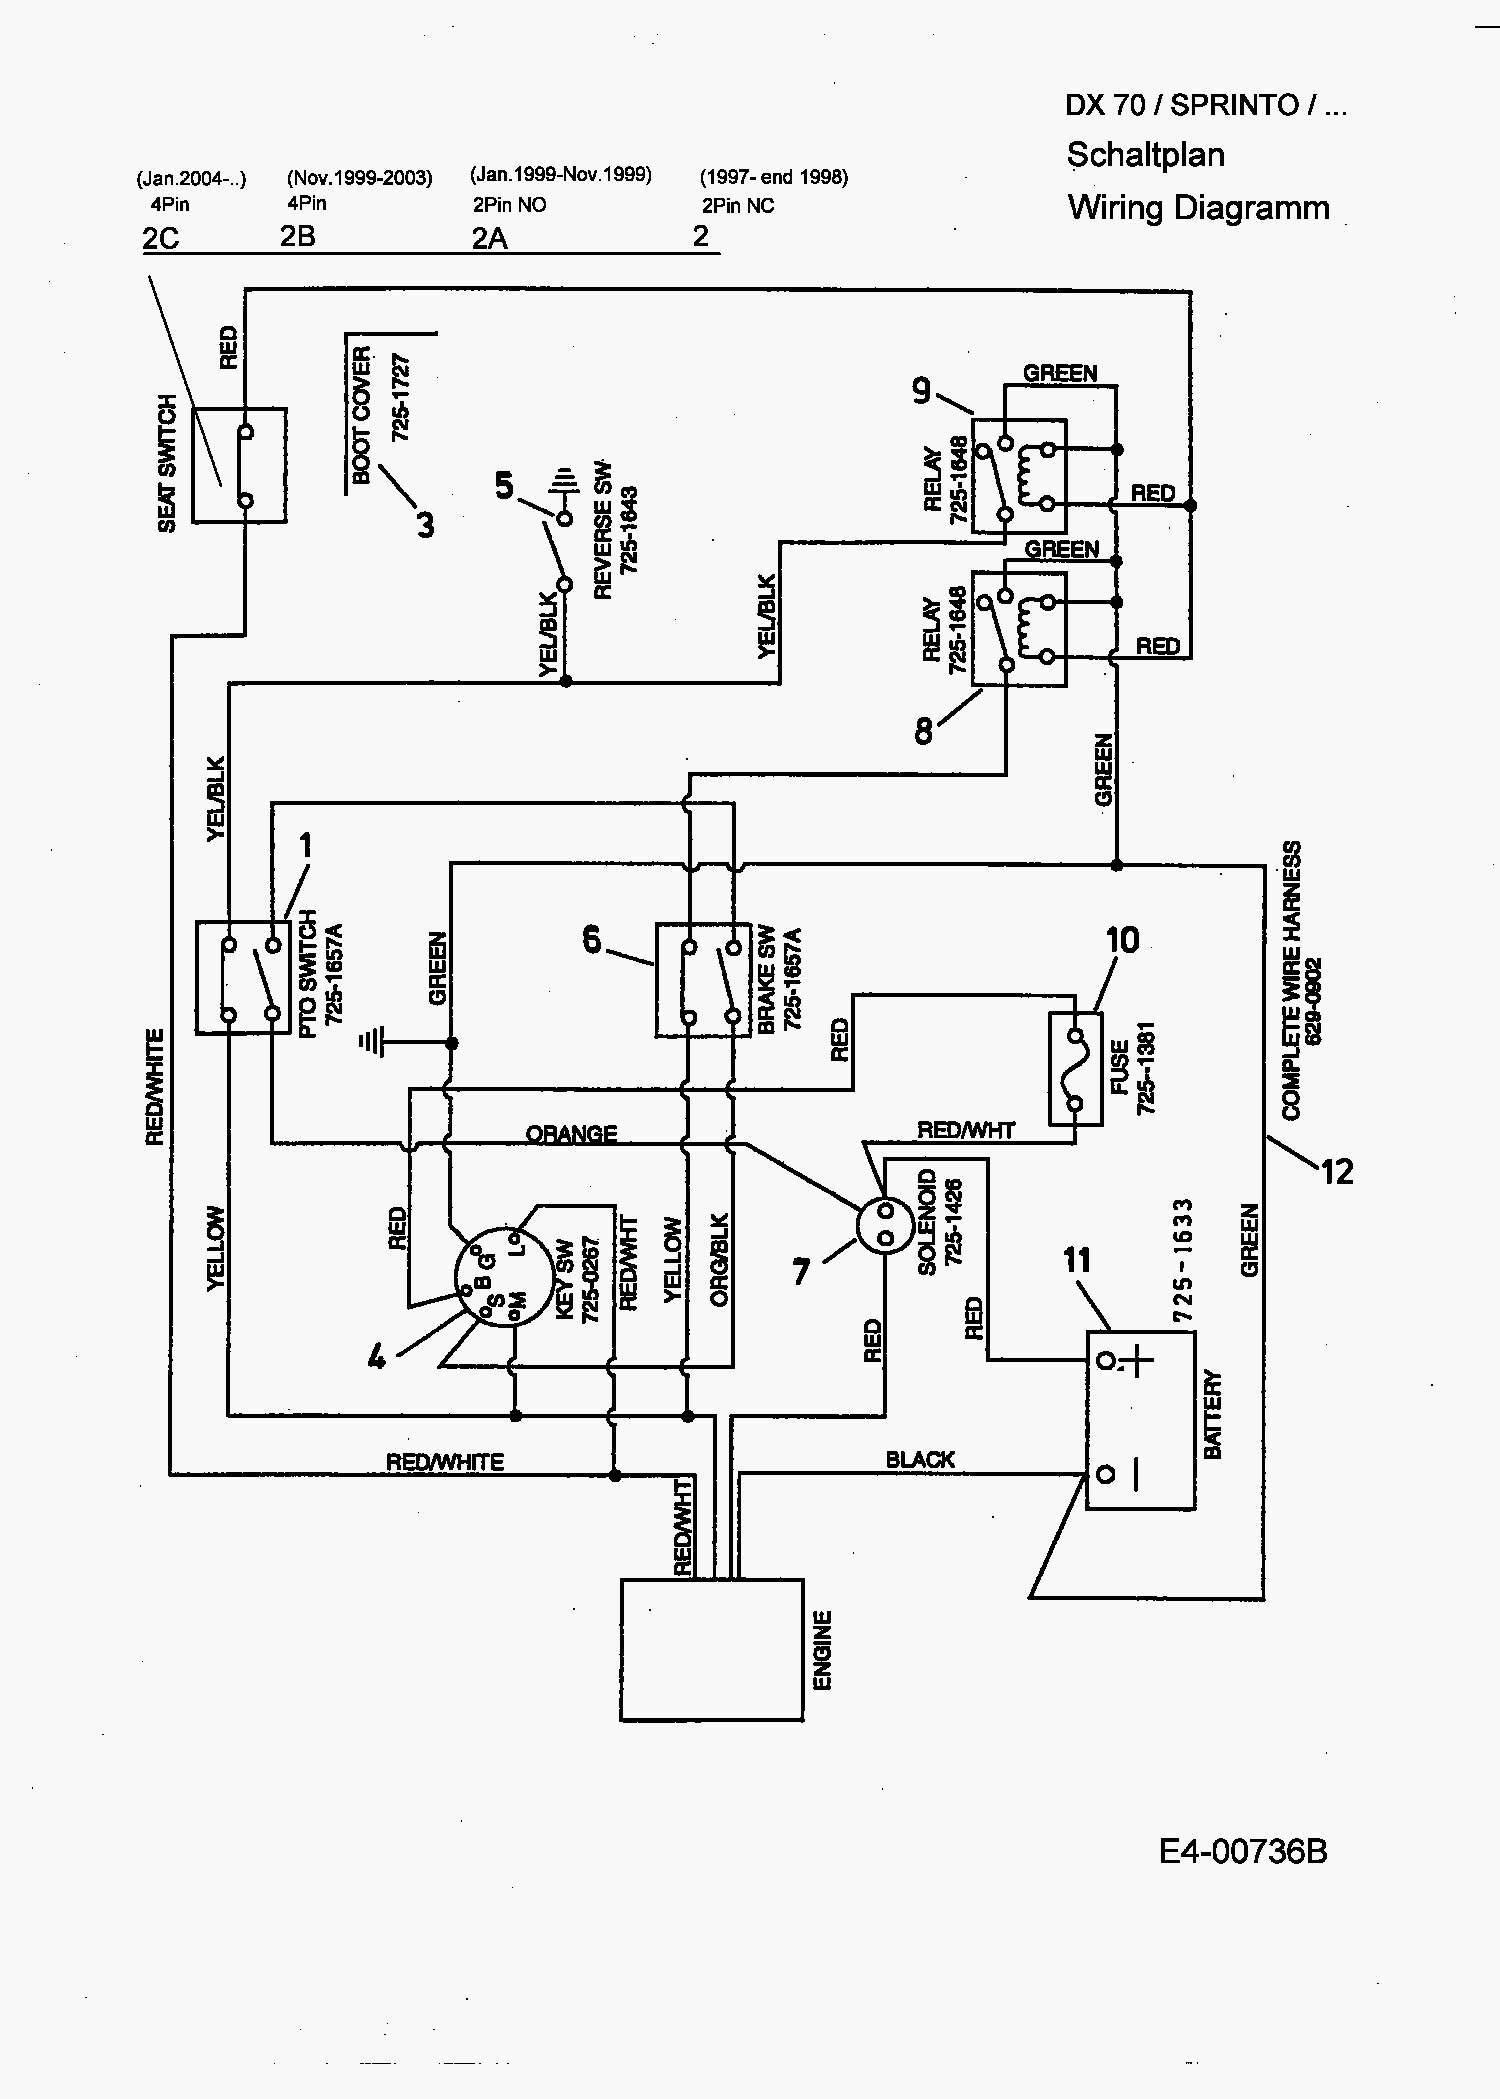 DIAGRAM] Scotts S1642 Wiring Diagram FULL Version HD Quality Wiring Diagram  - M1911A1SCHEMATIC9793.CONCESSIONARIABELOGISENIGALLIA.ITconcessionariabelogisenigallia.it